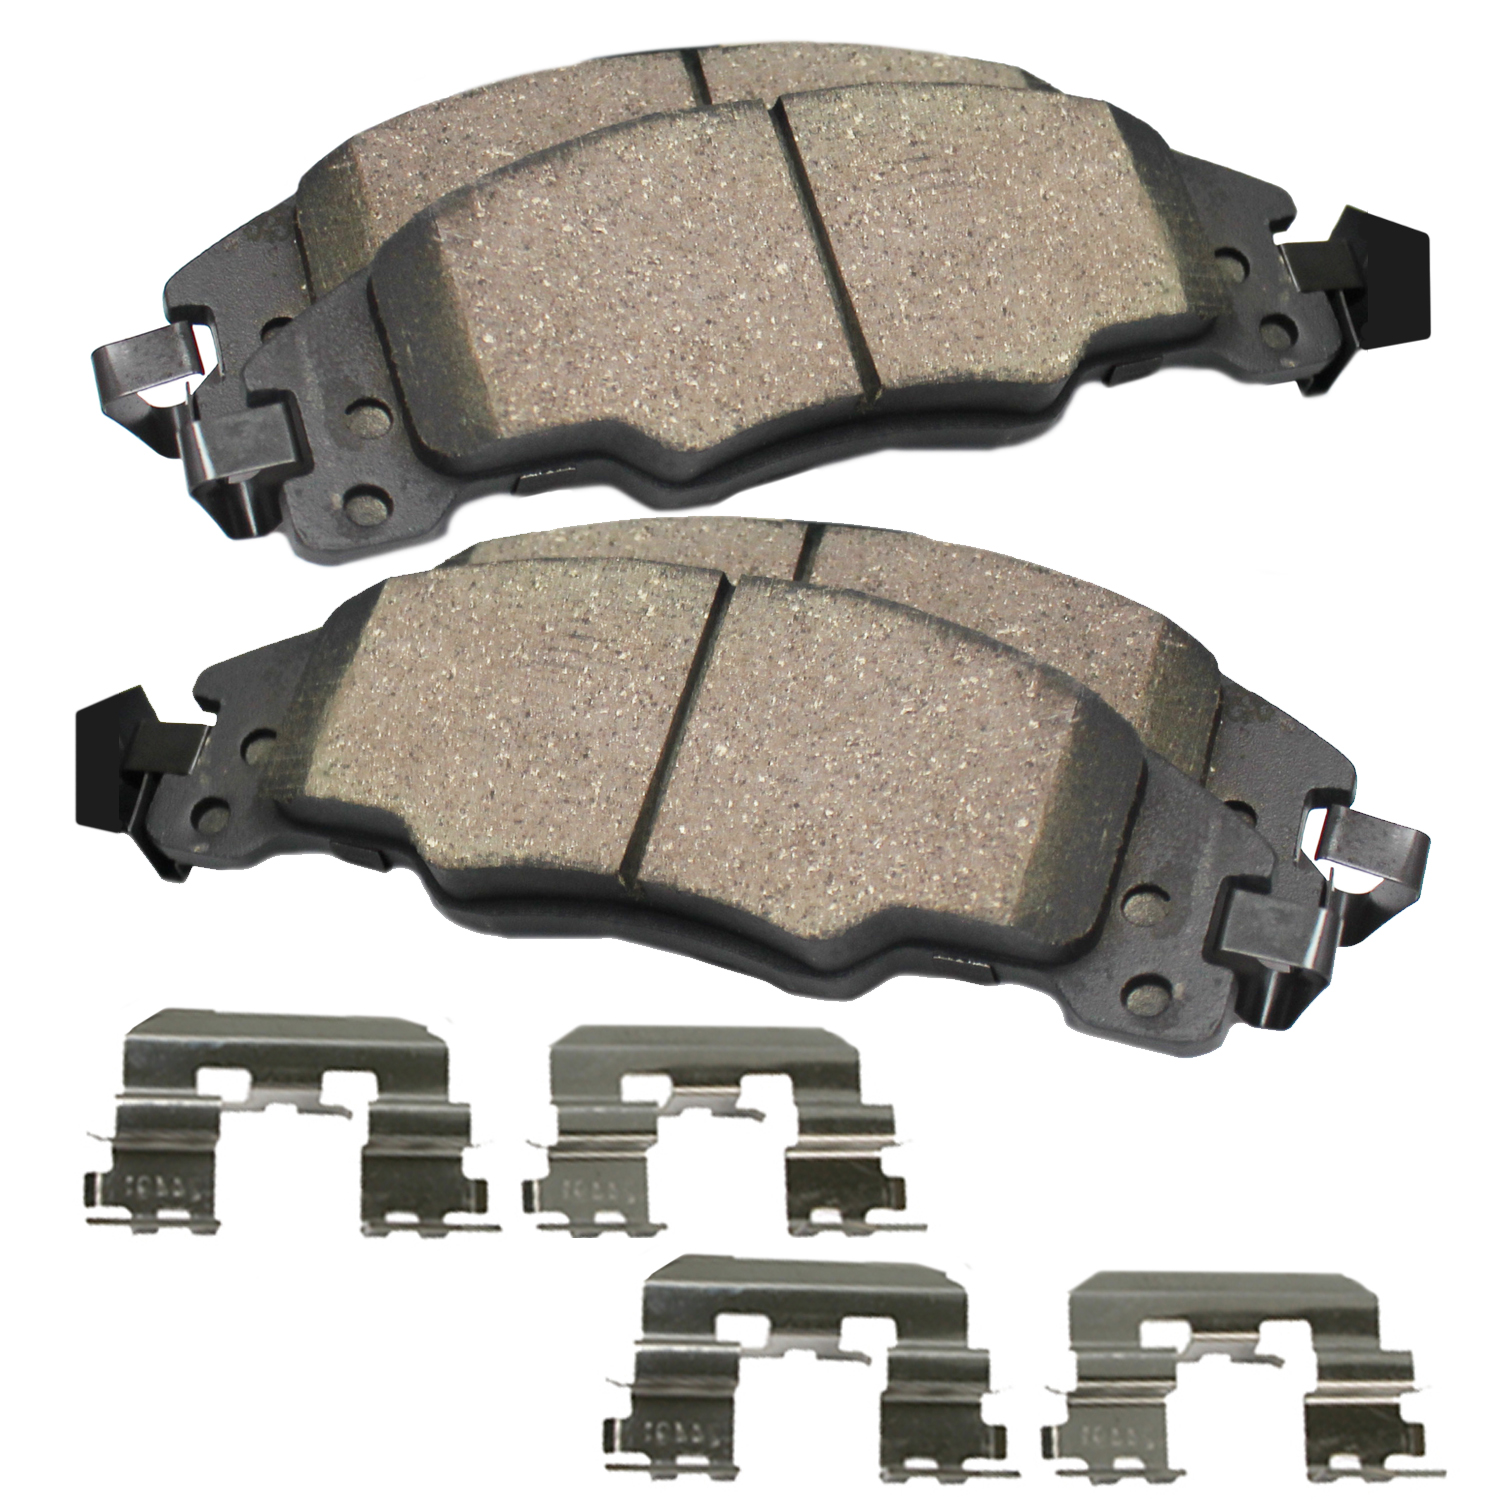 Front Ceramic Brake Pads - 2005-2007 Chevrolet, Pontiac, Saturn